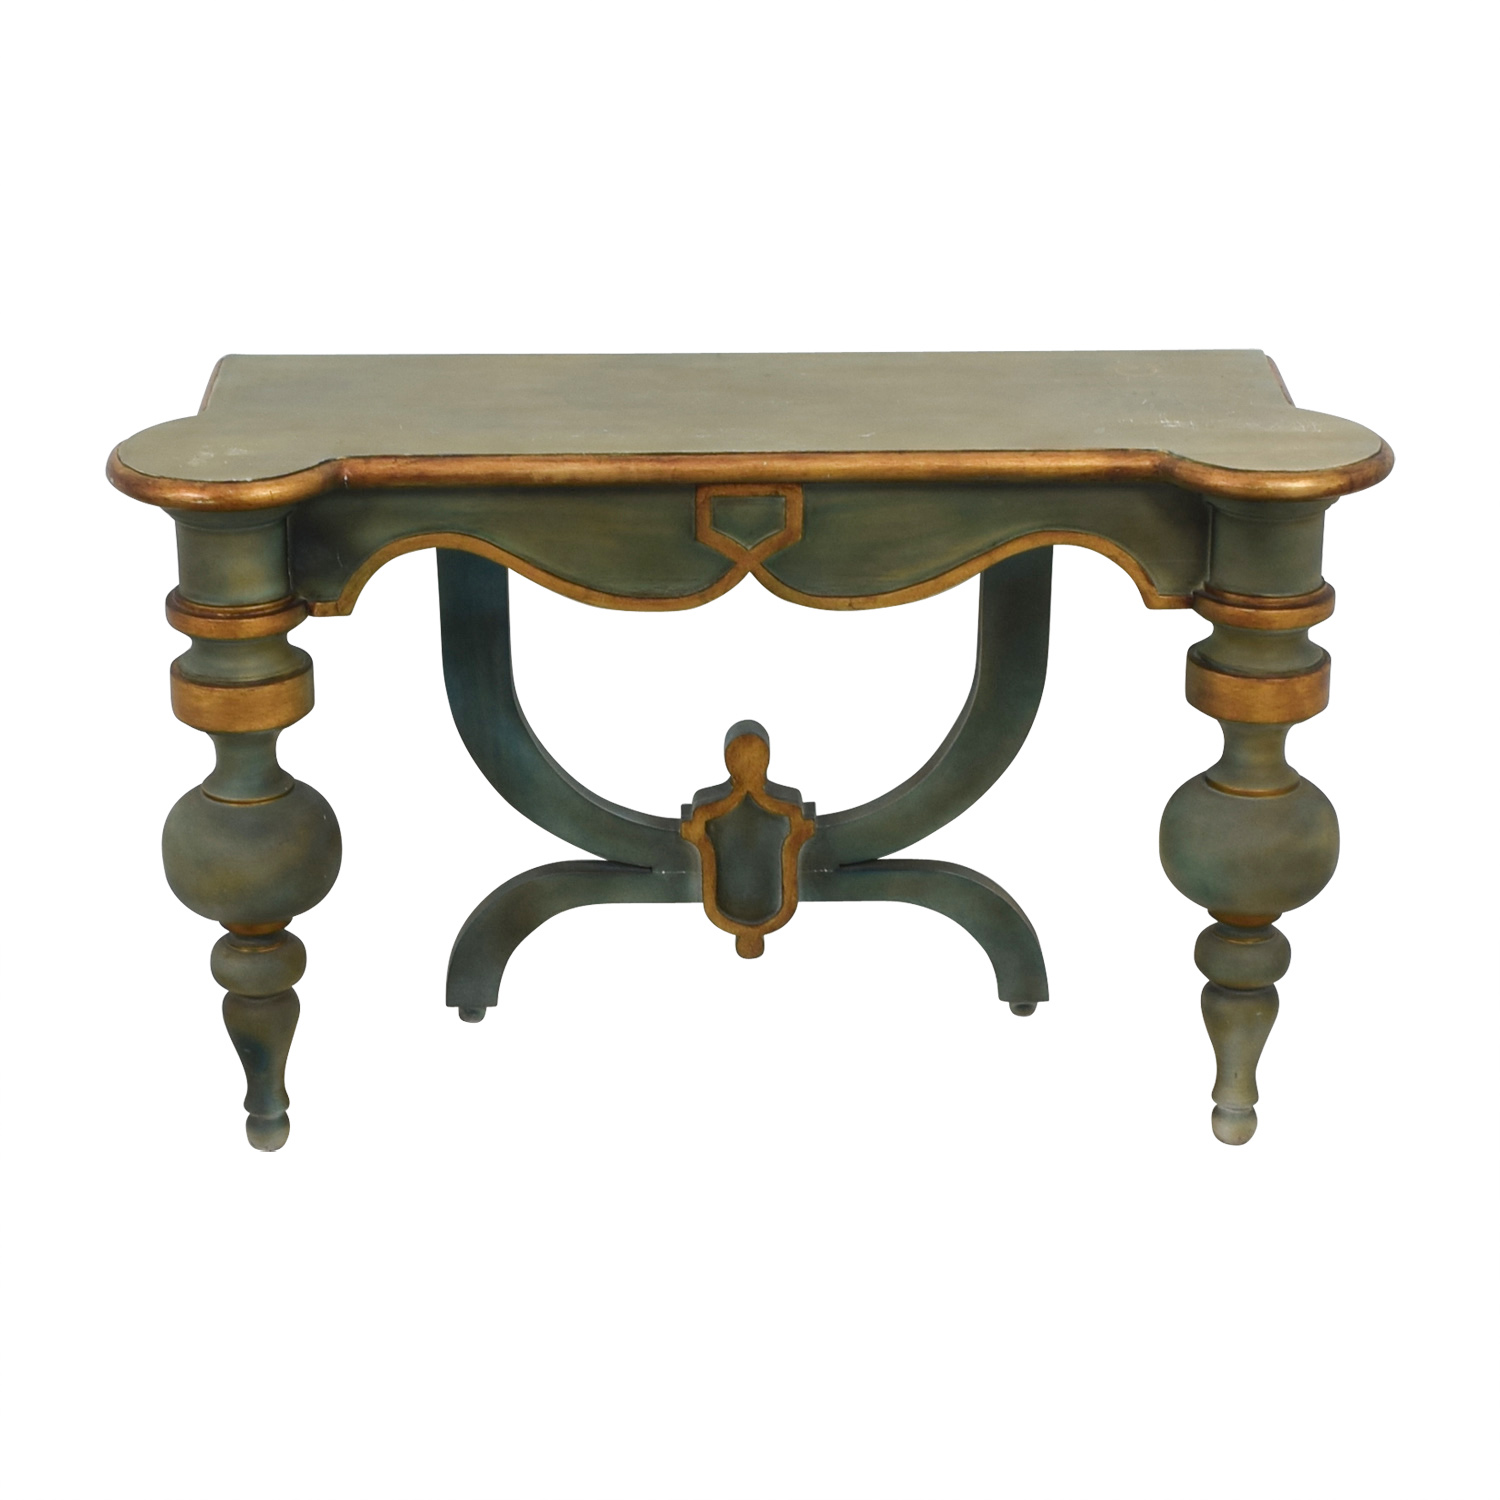 Antique Green Carved Wood Foyer or Entry Table Console / Accent Tables